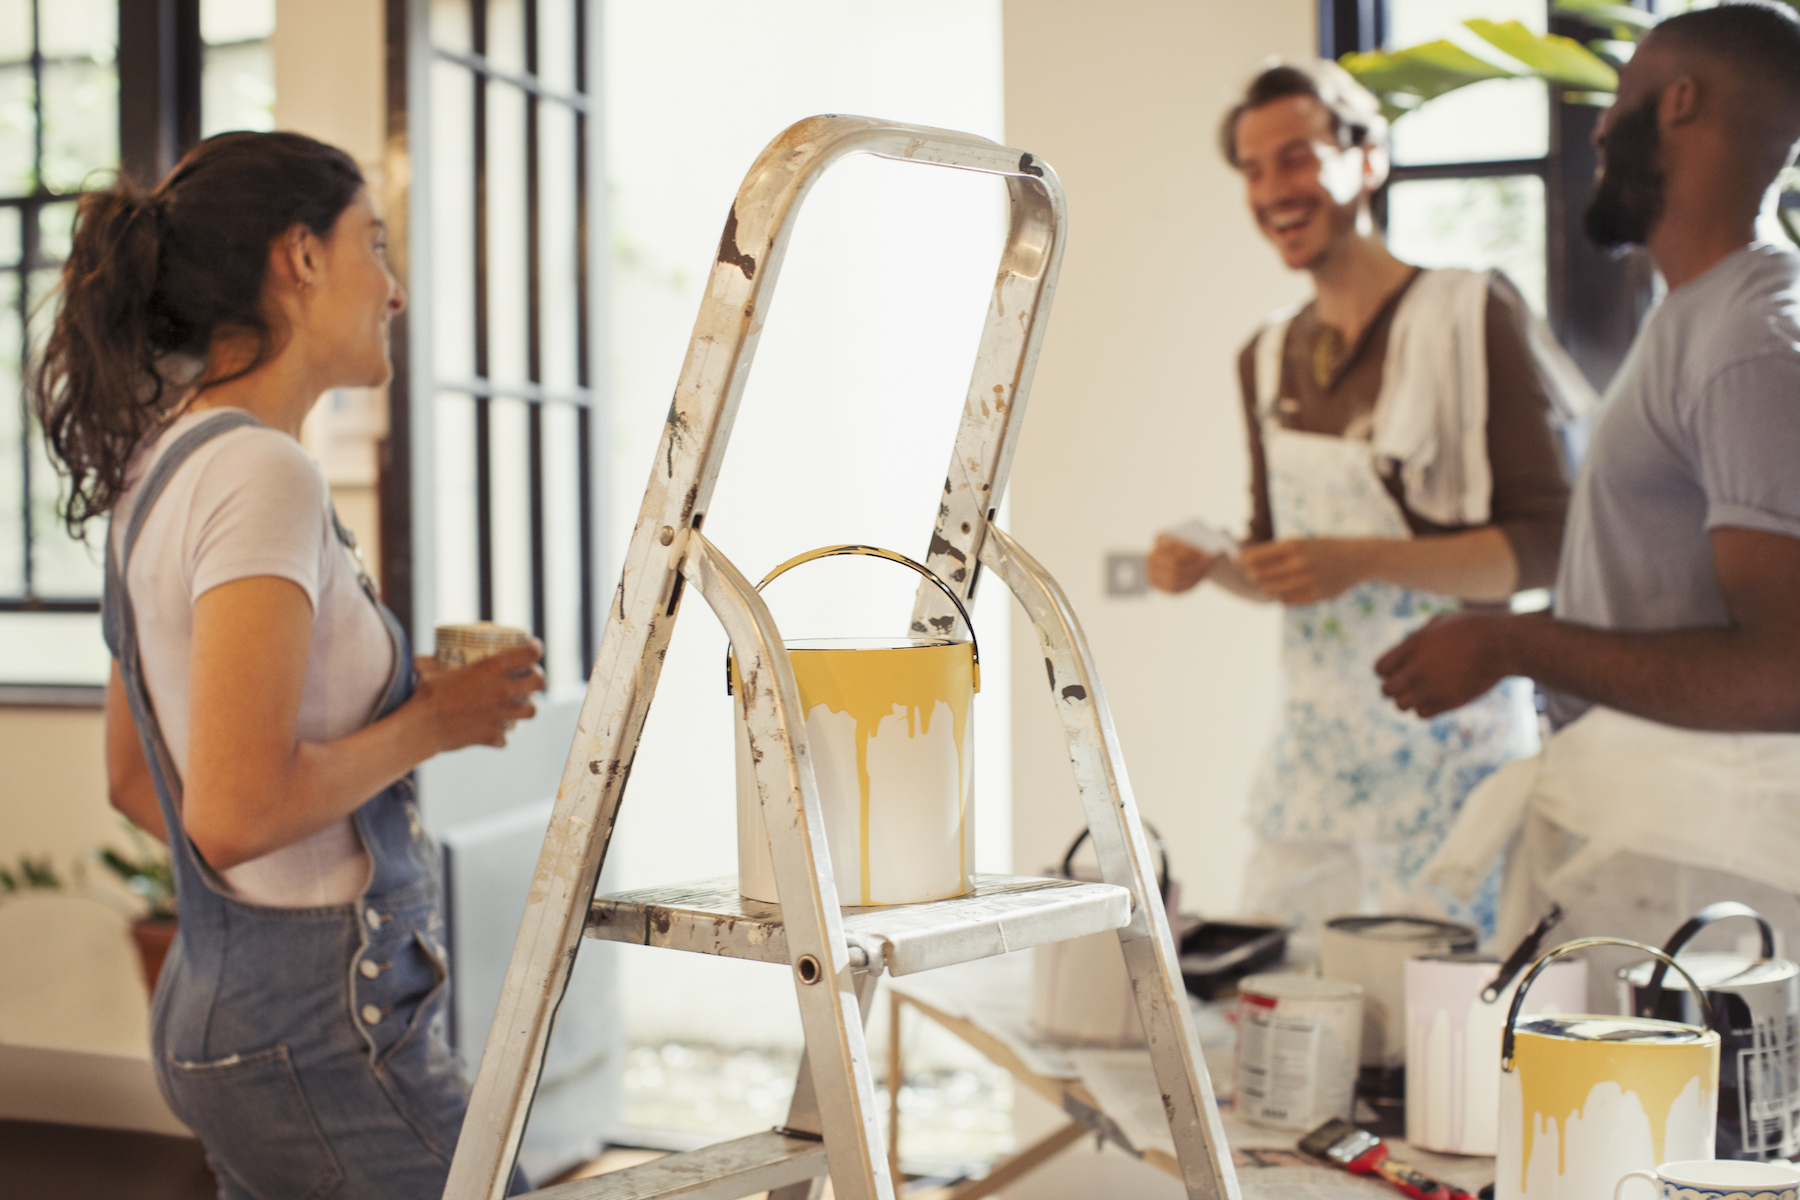 These Paint Trends Will Be Huge in 2019, According to Pinterest